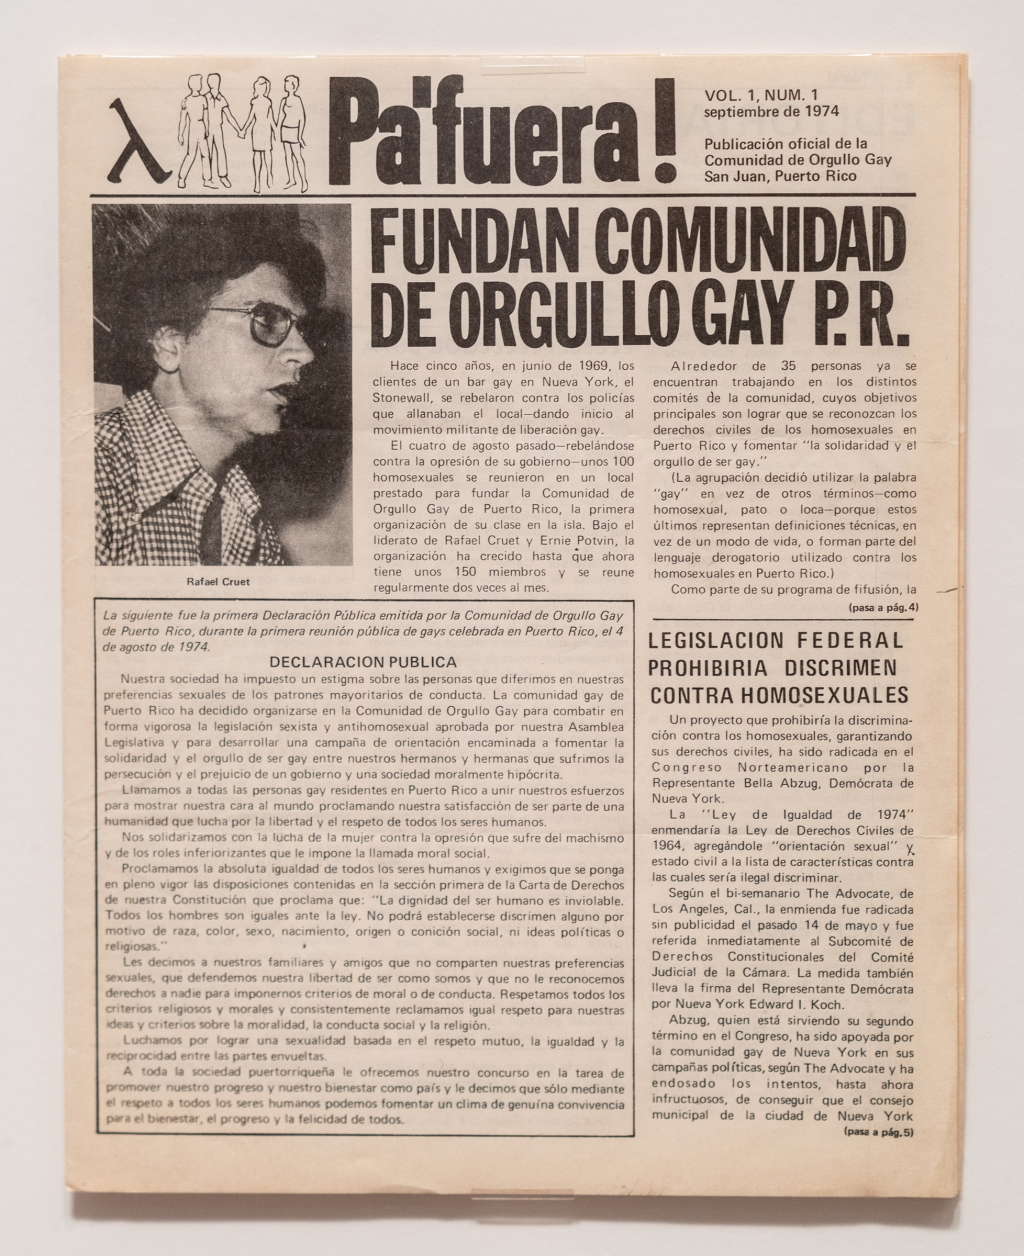 """In the summer of 1970, a group of black and latinx gays and lesbians broke off from the Gay Liberation Front, saying that they didn't live up to their ideals of anti-racism and anti-imperialism. They formed a new national organization called the Third World Gay Revolution. The manifesto, published side-by-side in Spanish and English, was modeled after the Young Lords and the Black Panthers, but also called those organizations out for their ingrained homophobia. """"Those gay liberation ideas really spread through Latin America,"""" says Baumann, pointing out the Puerto Rican edition of the GFL's Come Out magazine, translated to Pa'Fuera. """"There's a lot of gay liberation organizing by people of color in the 1970s that isn't always talked about."""""""